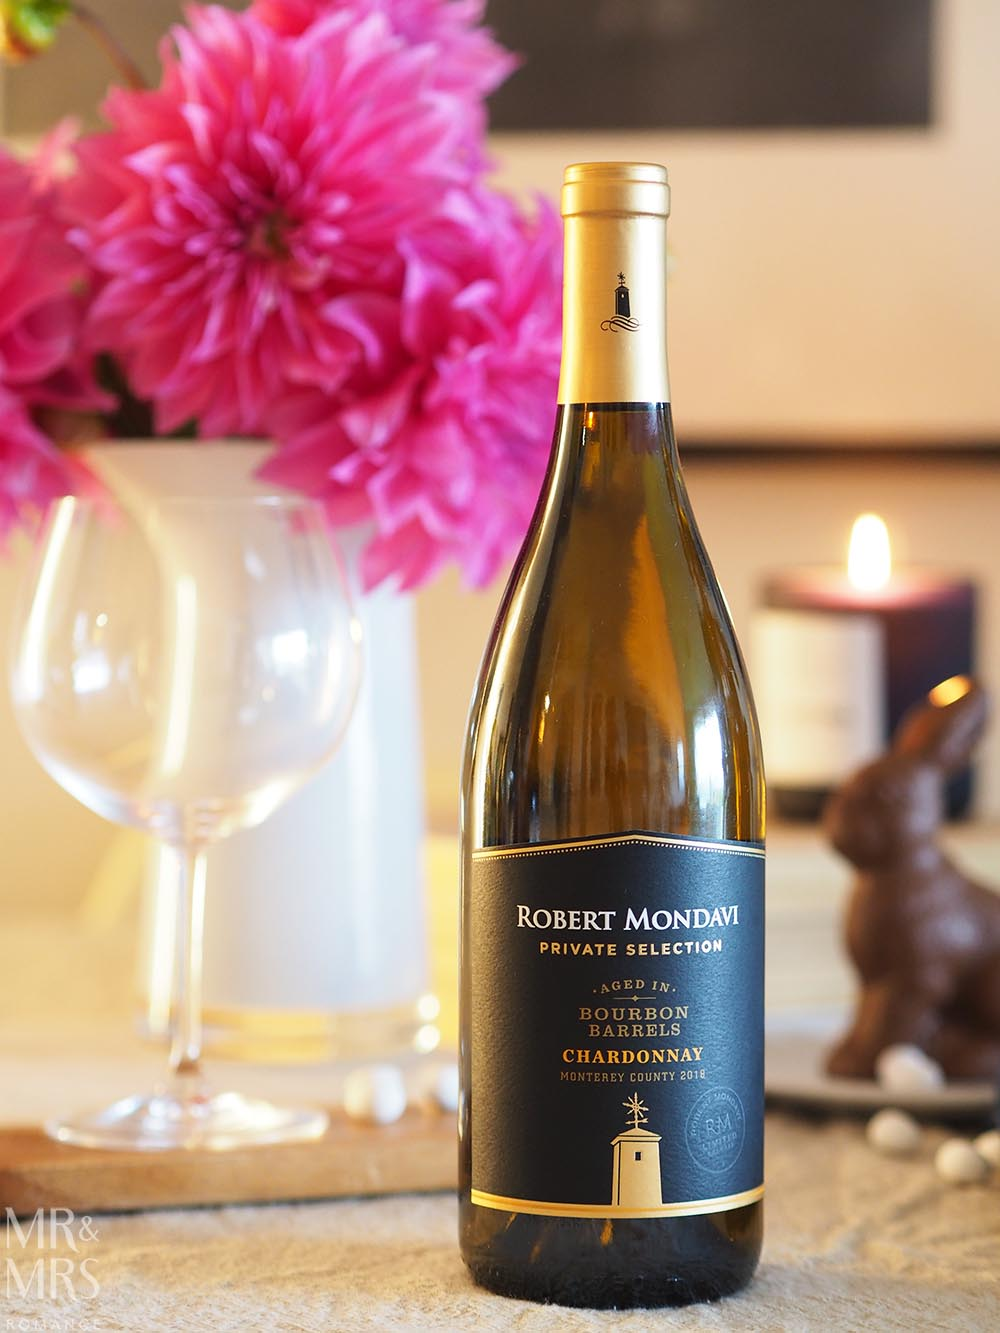 Wine for Easter - Robert Mondavi Pirvate Selection Chardonnay aged in Kentucky Bourbon barrels